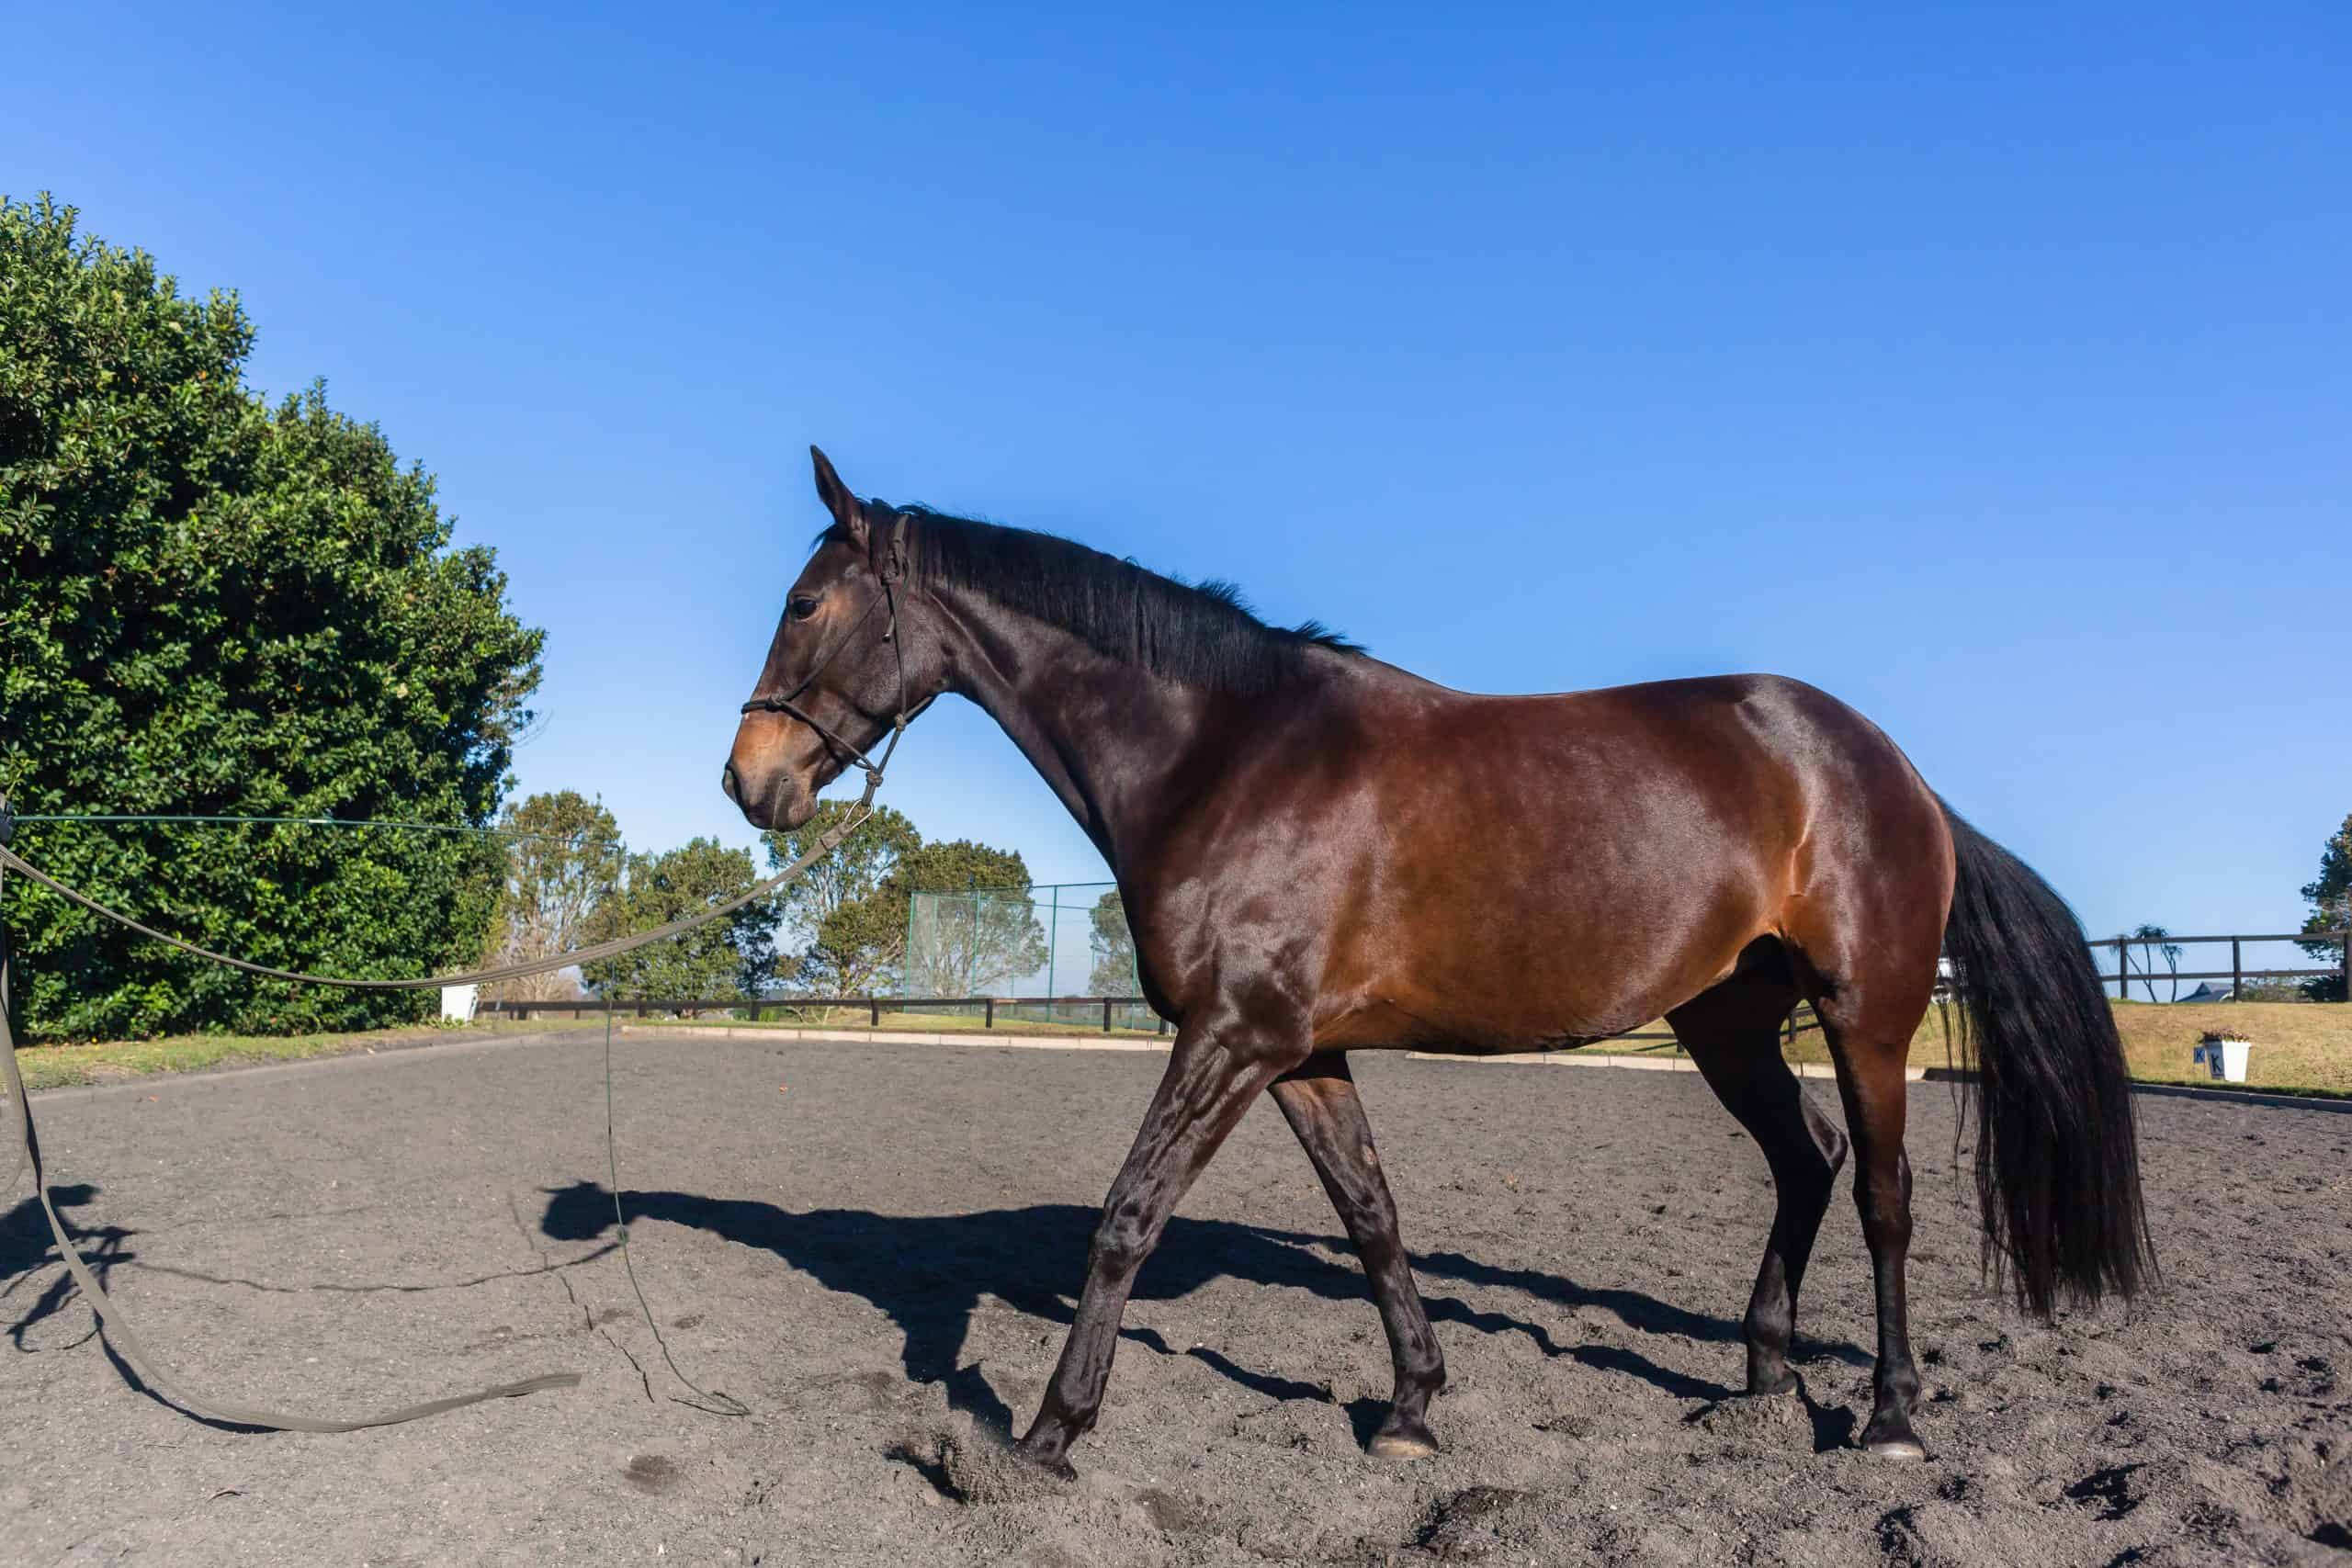 Horse equestrian animal close up exercising sand arena outdoors afternoon blue sky